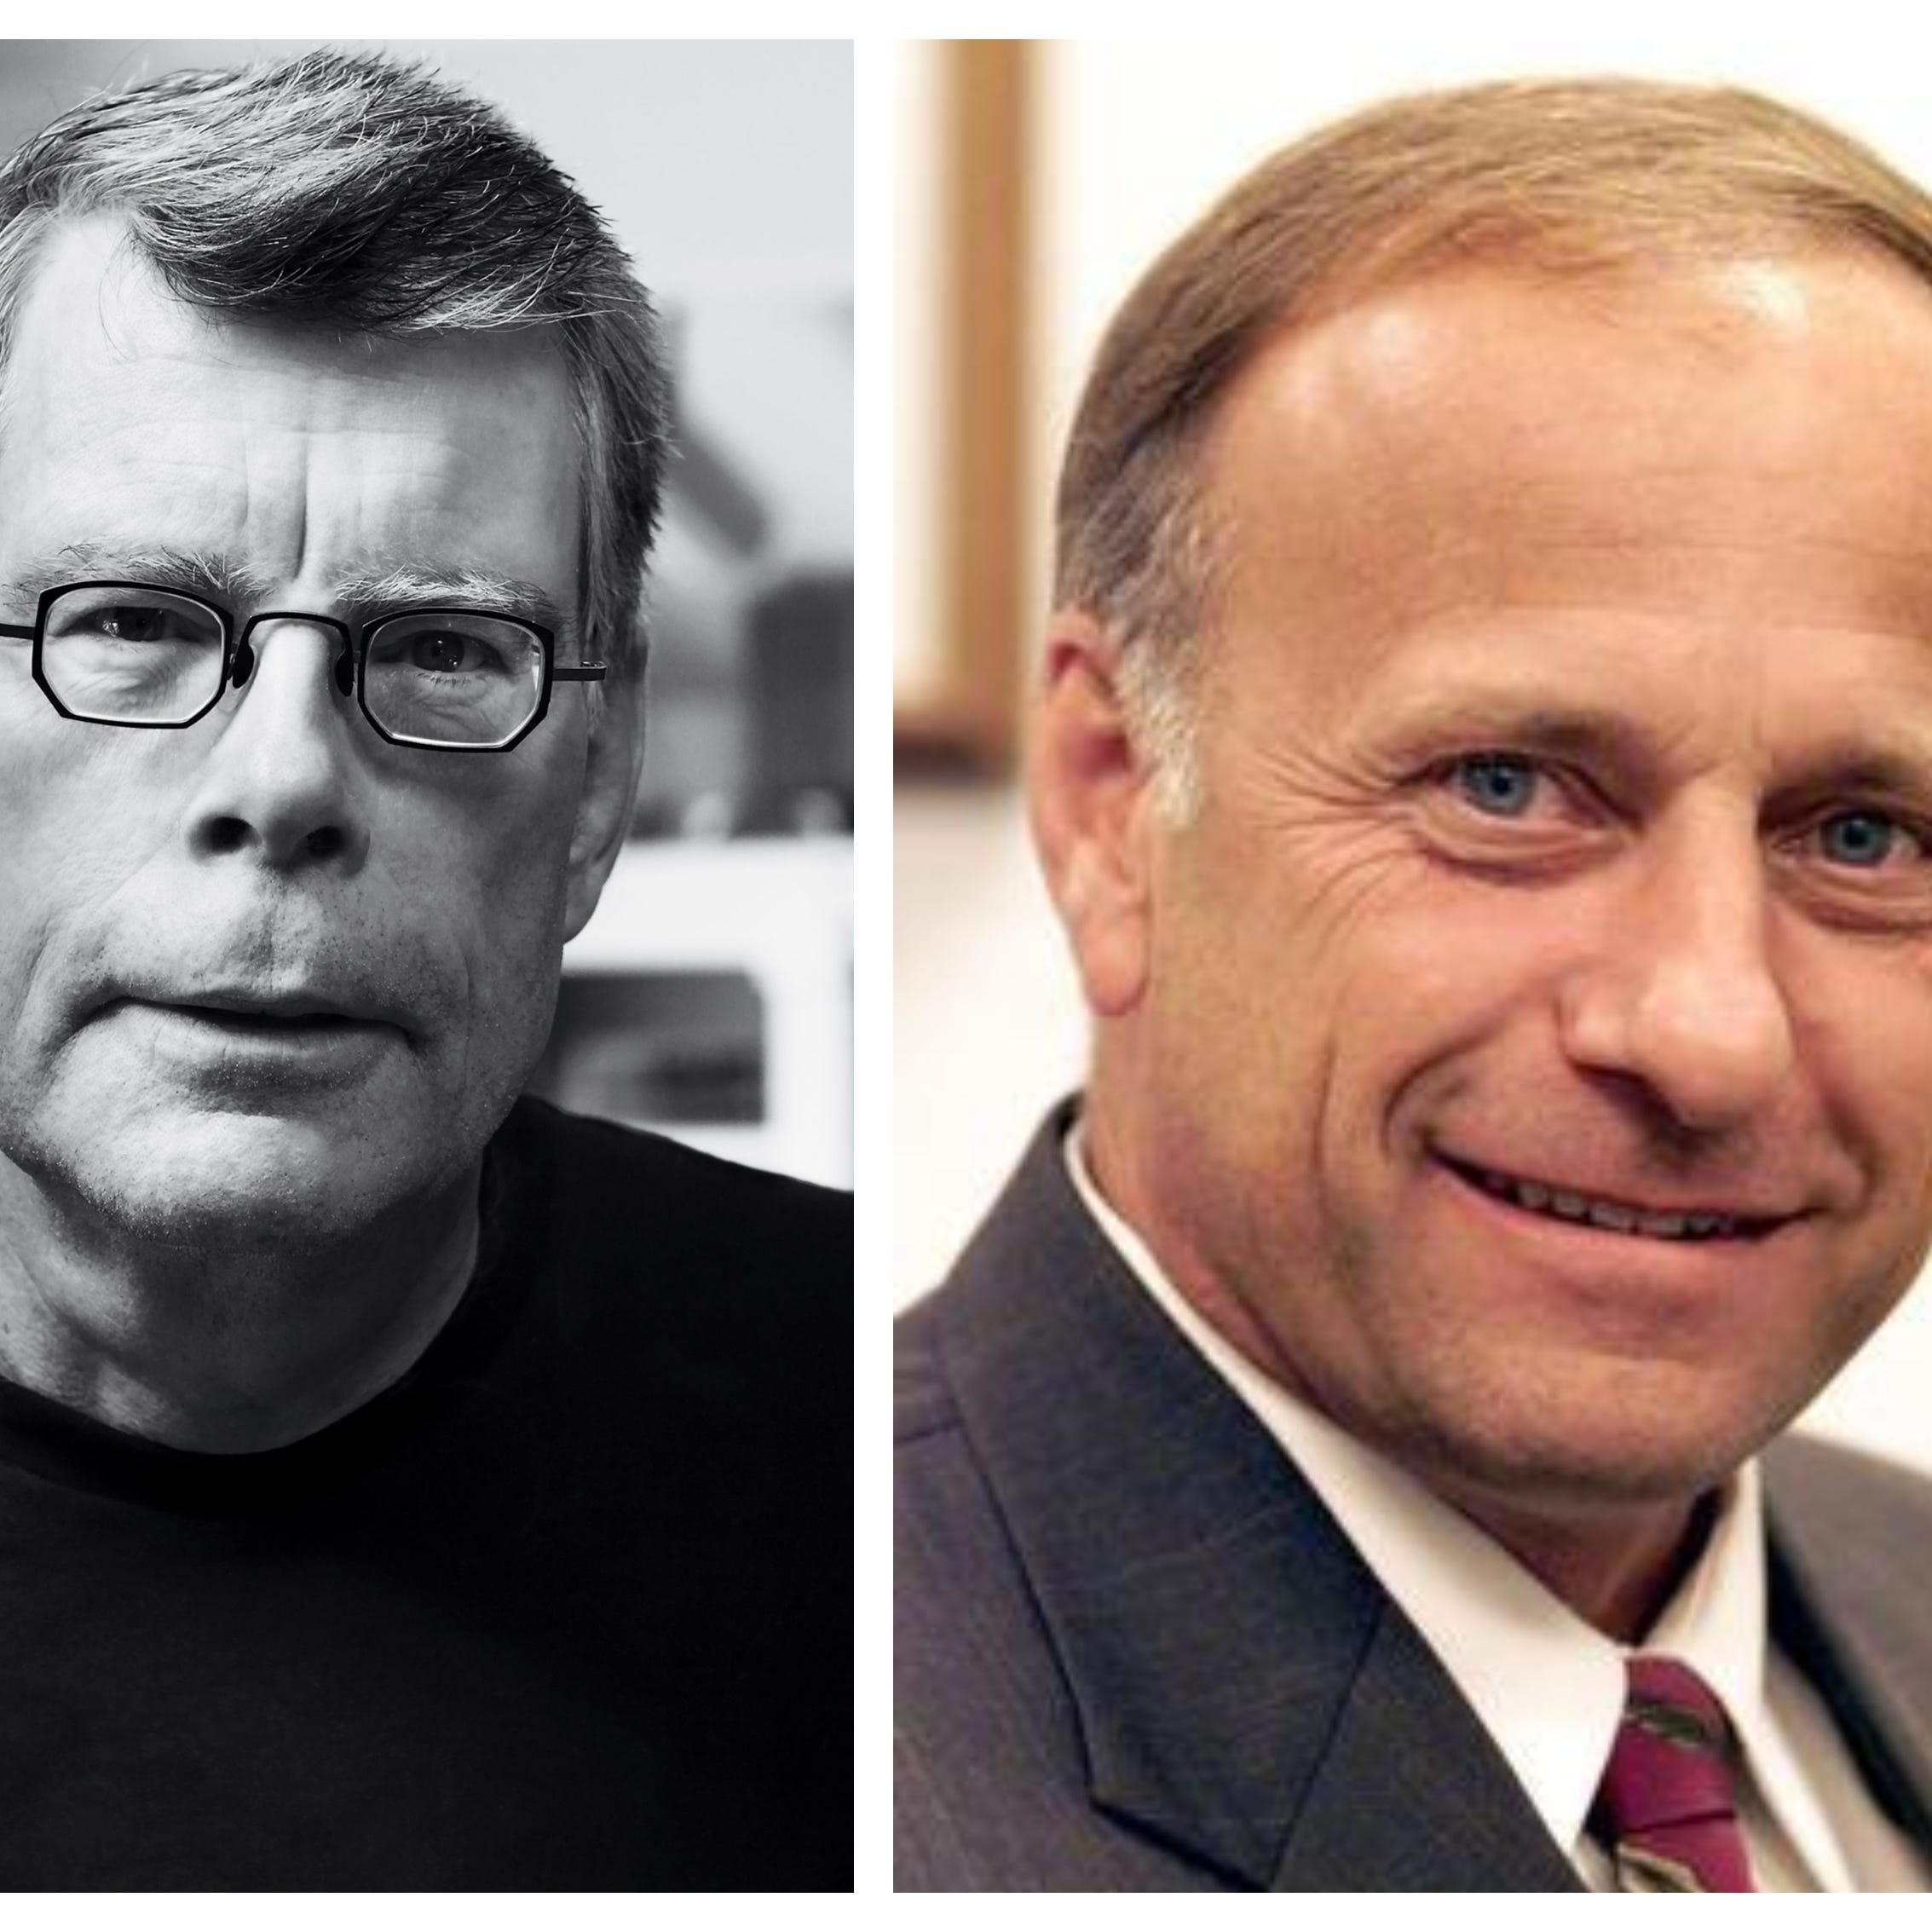 Stephen King wants Iowans to know he's tired of being confused with Steve King